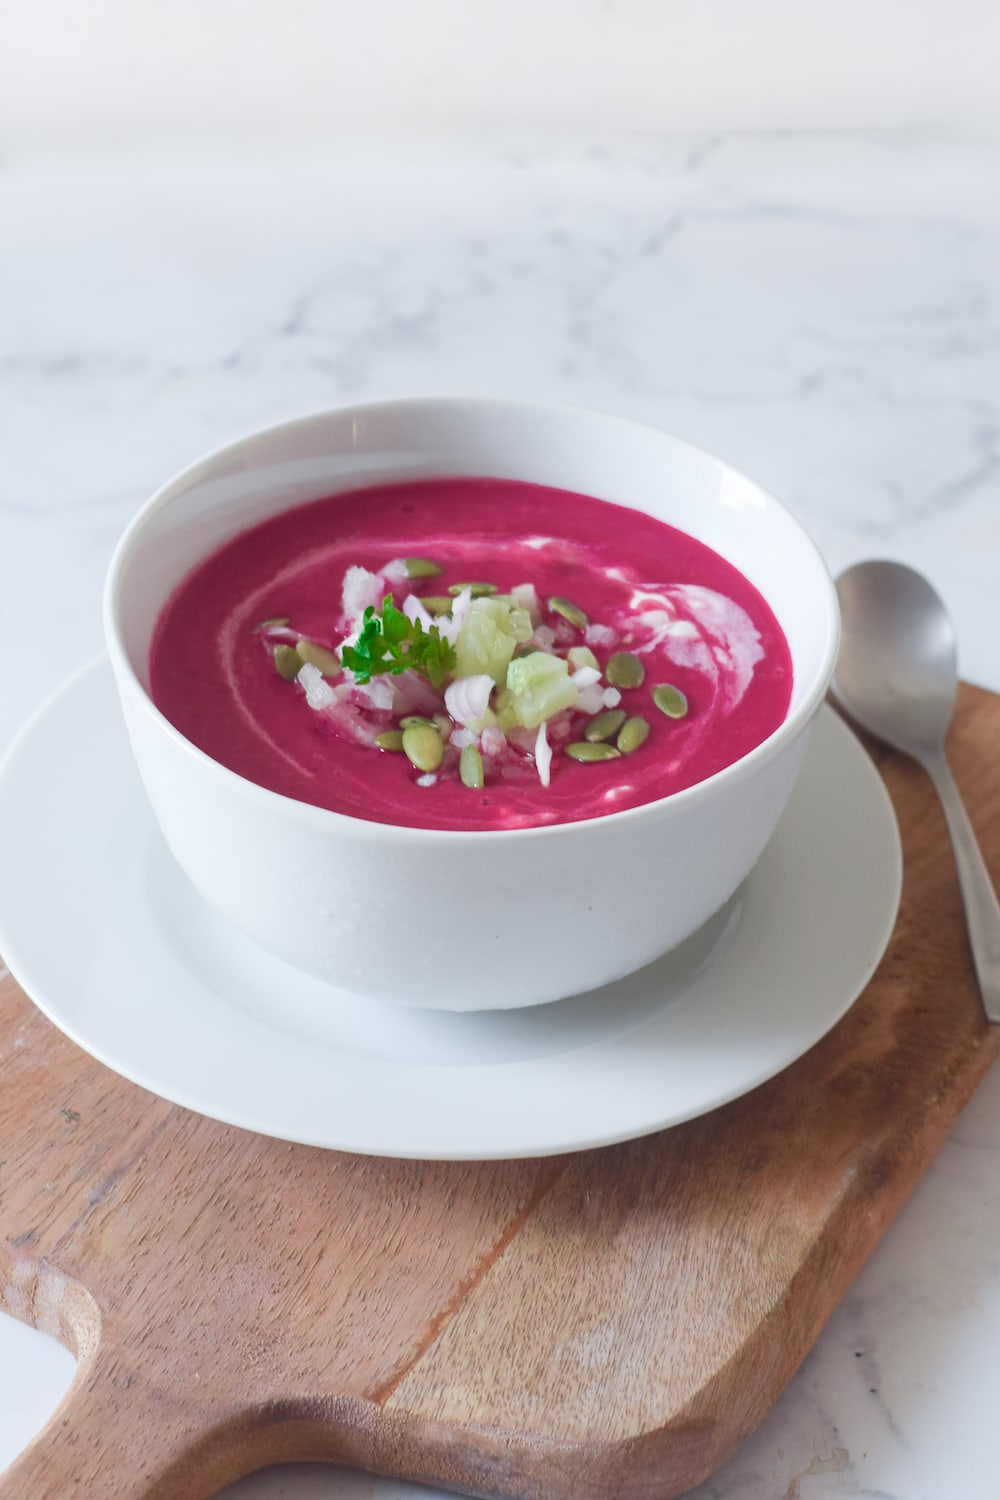 Beet gazpacho soup in a white bowl on a wooden board.